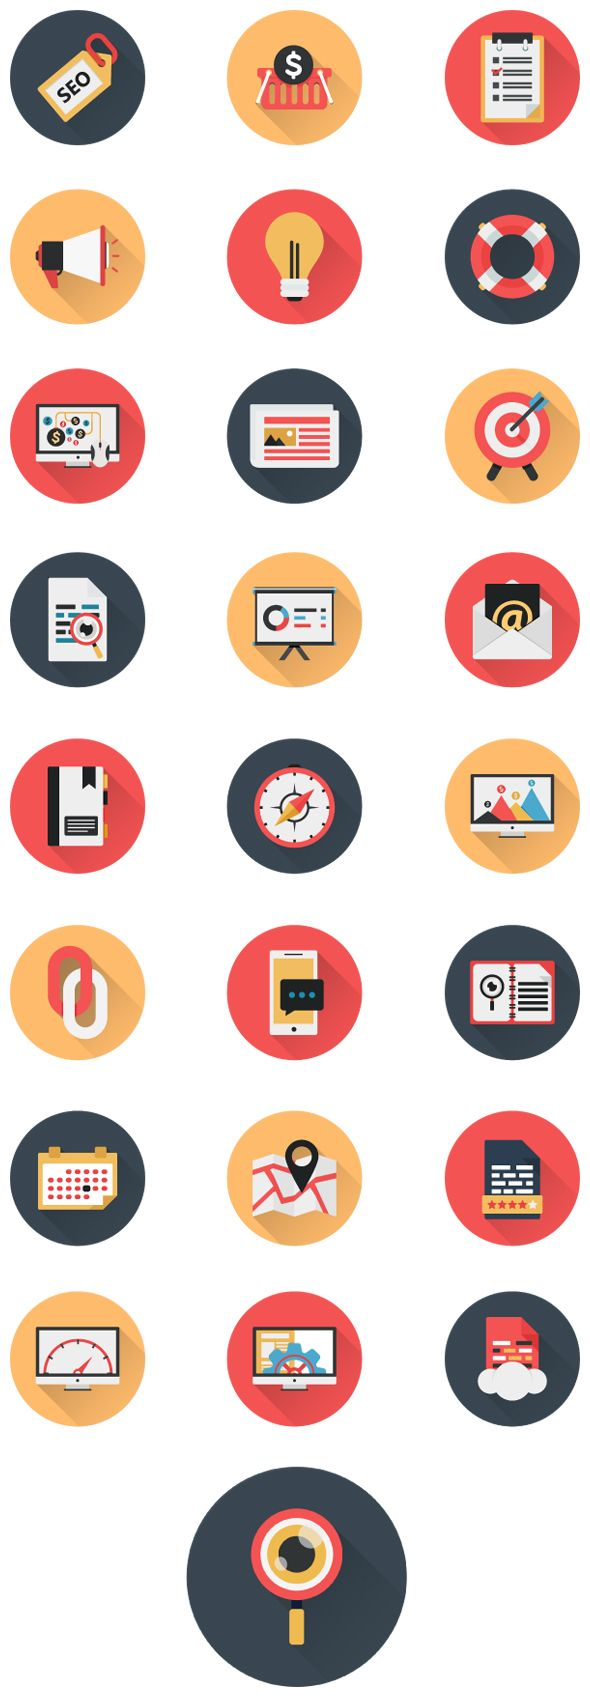 Business Icons and Web Icons Set - Flat Icons by Cursor Creative House, via Behance application, bank, banking, collection, commerce, communication, computer, concept, creative, data, document, e-commerce, elements, finance, graphic, icon, infographic, information, interface, internet, market, media, mobile, money, objects, pictogram, presentation, sign, tools, website